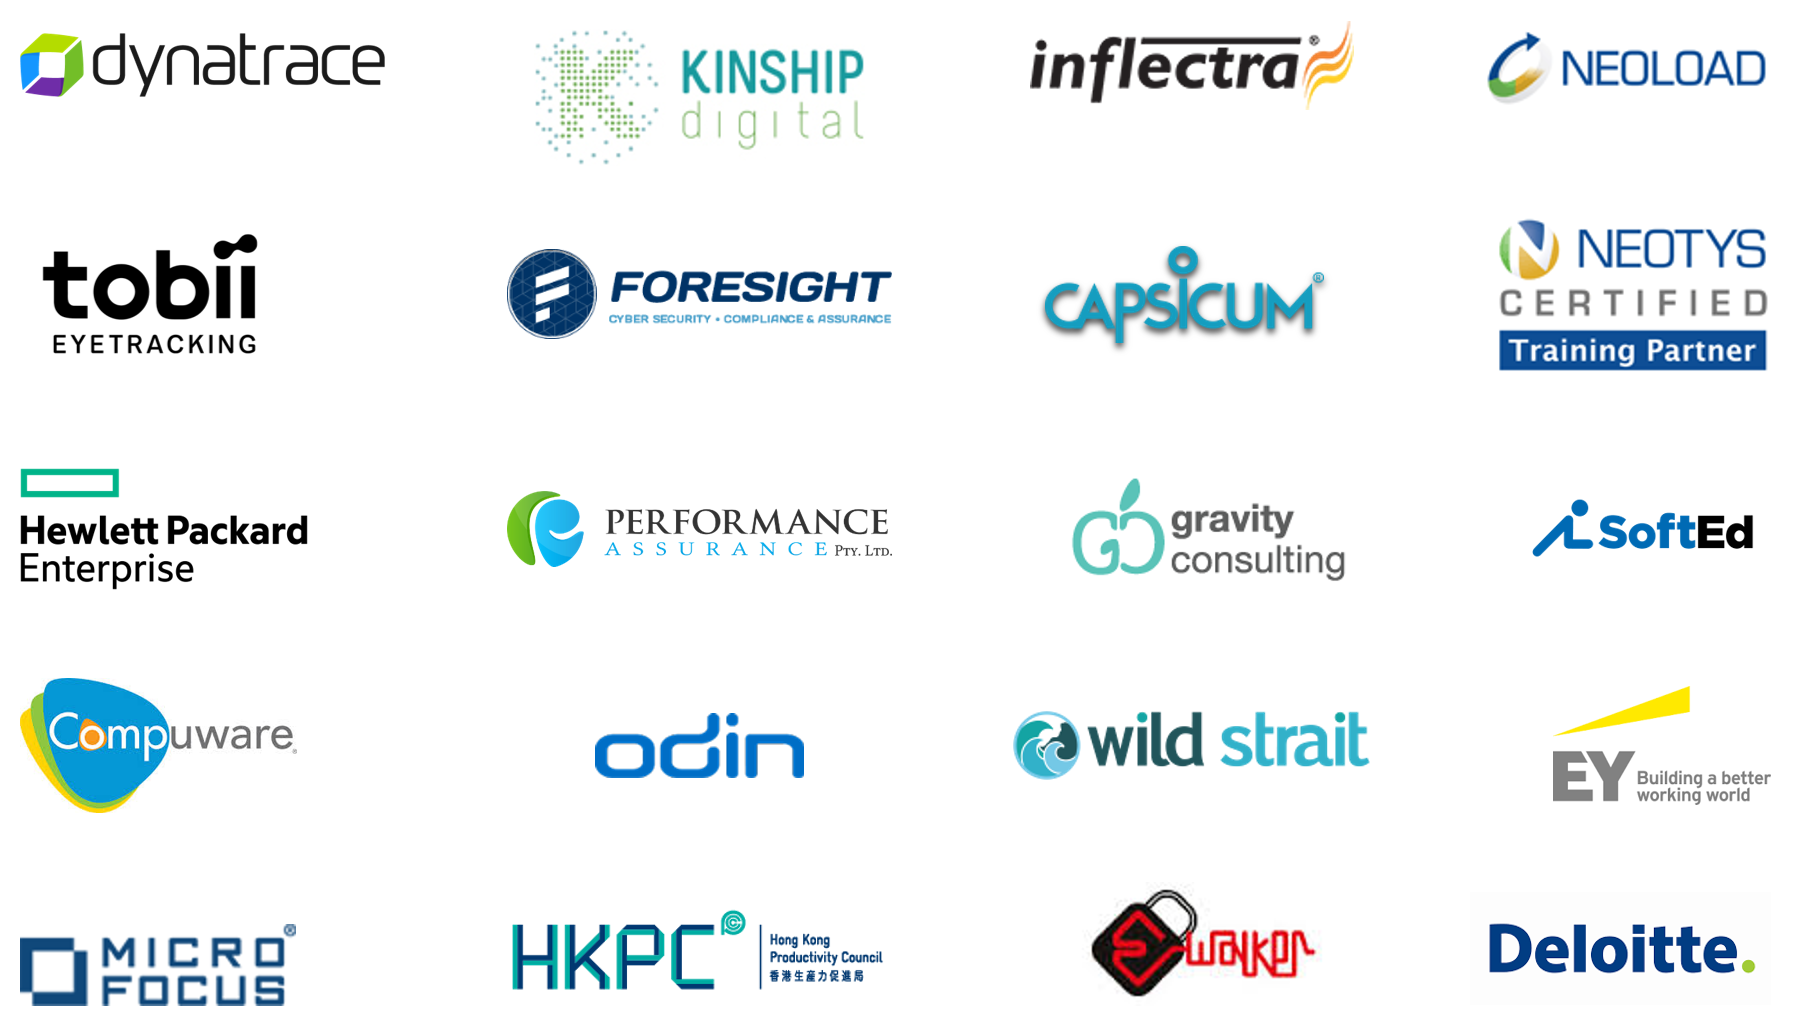 List of AccessHQ partners. Dynatrace, Kinship, Infectra, Neoload, Tobii, Foresight, Capsicum, HP, Gravity Consulting, SoftEd, Compuware, Odin, Wild Strait, EY, Micro Focus, HKPC, EWalker, Deloitte and Performance Assurance